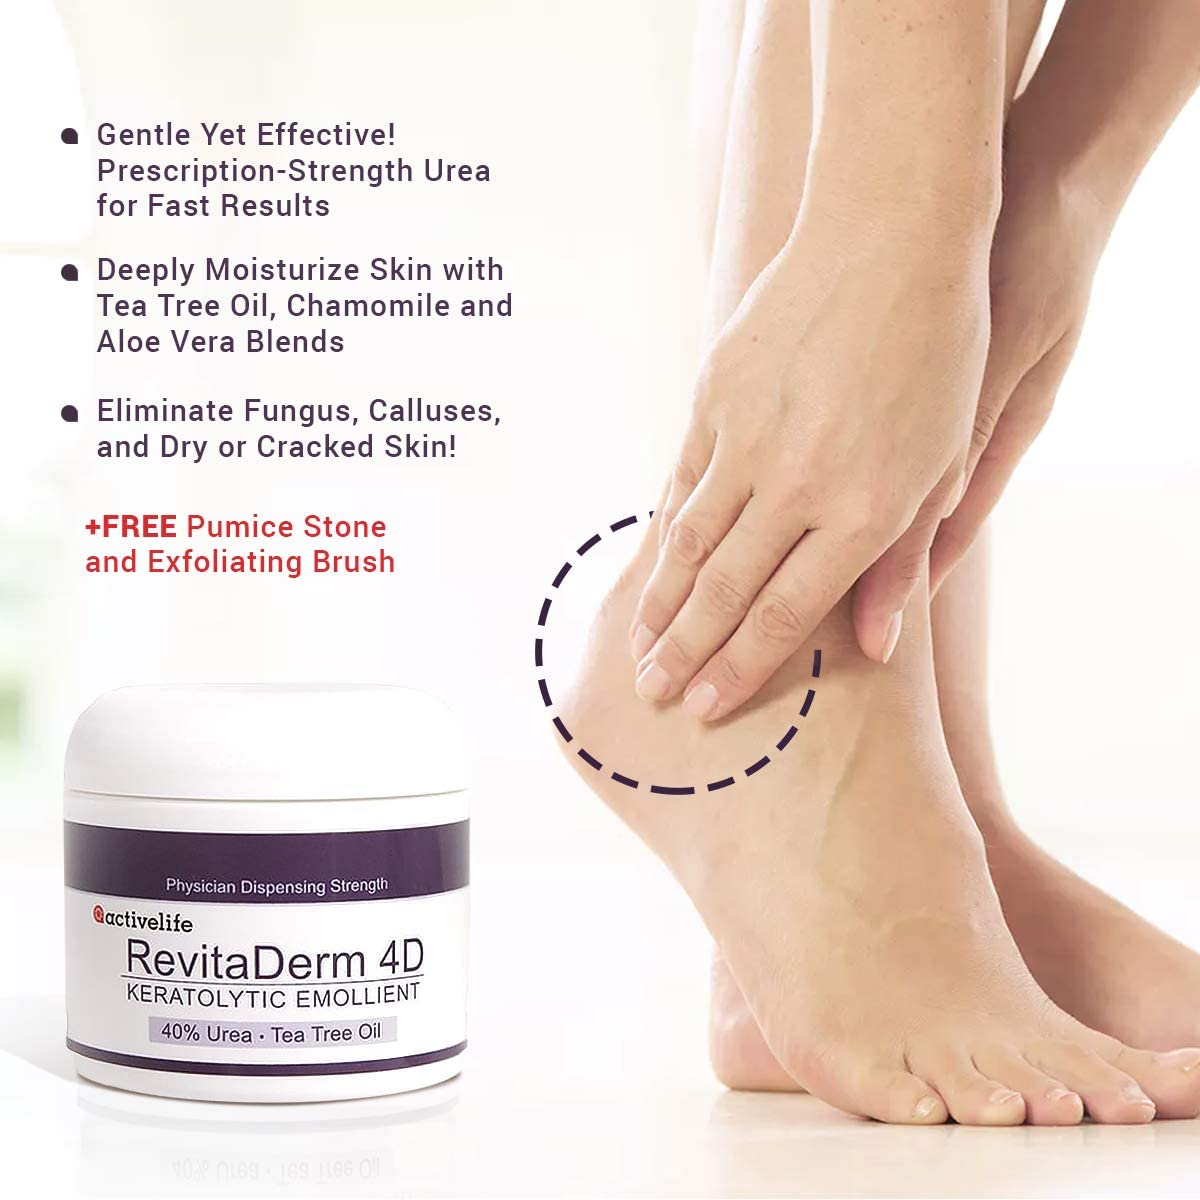 Urea Cream 40 RevitaDerm 4D-Callus and Corn Remover-Moisturizes, Rehydrates Exfoliates Thick, Cracked, Rough, Dead and Dry Skin-Feet, Knees, Elbows, Hands Free Pumice Stone